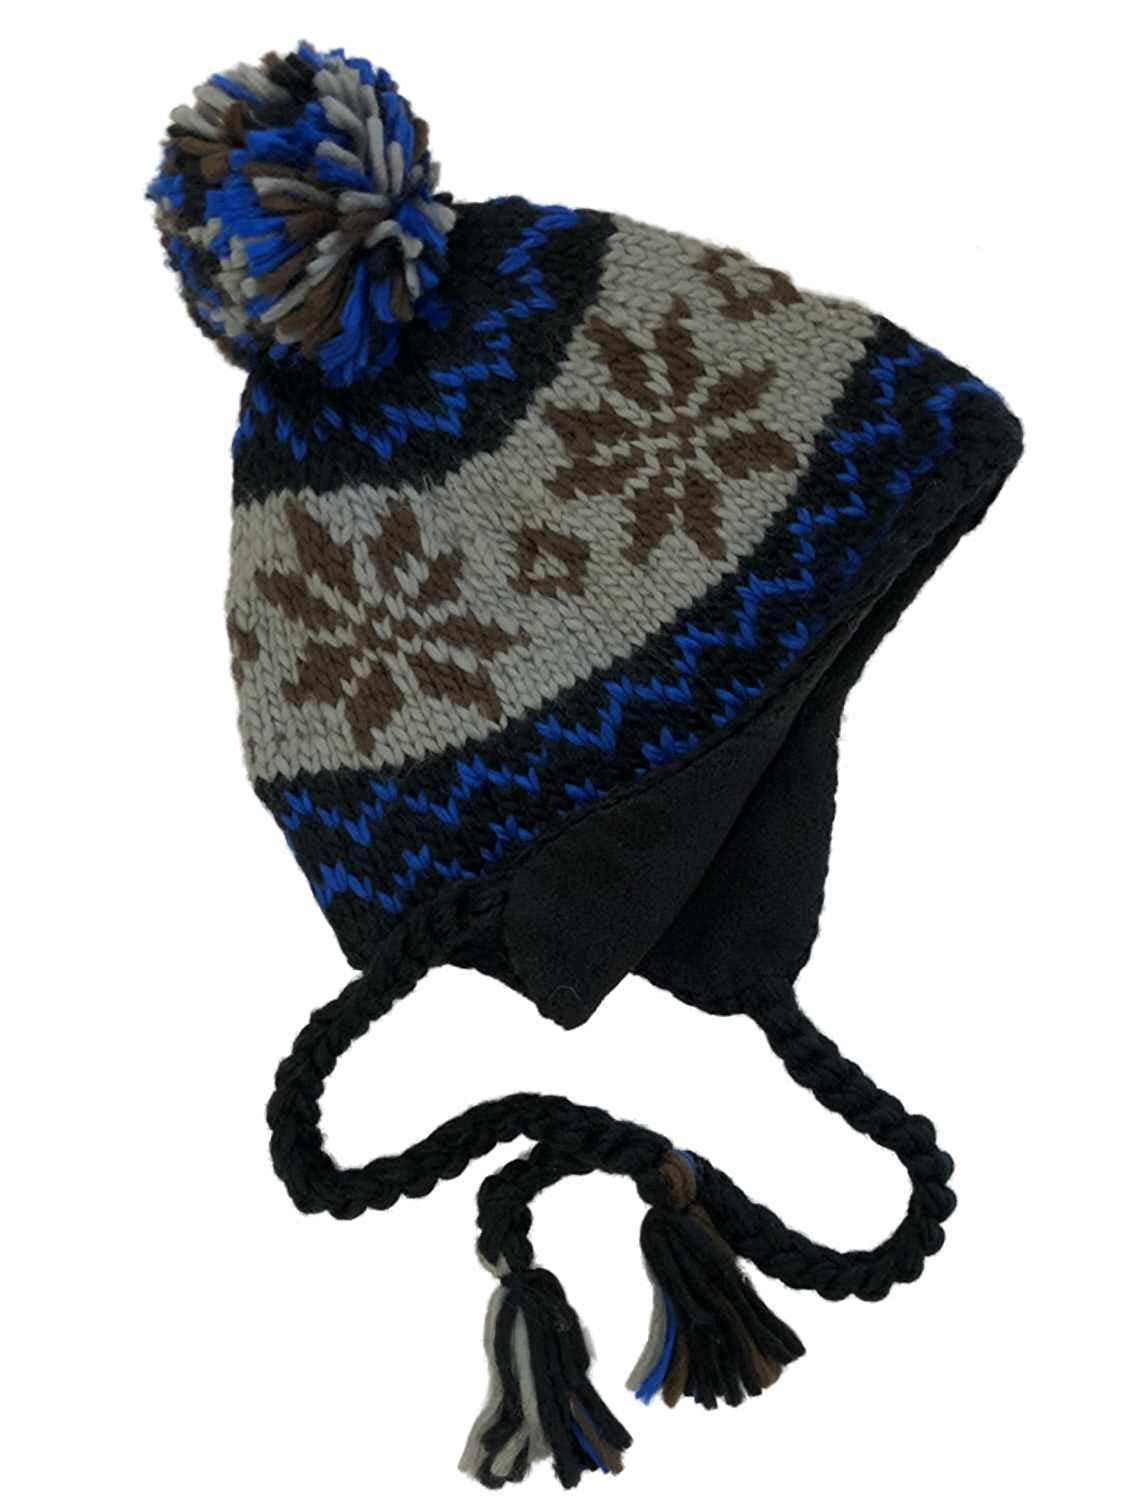 b075ac110f0 Get Quotations · Free Authority Mens Black Blue   Gray Snowflake Pom Top  Peruvian Trapper Hat